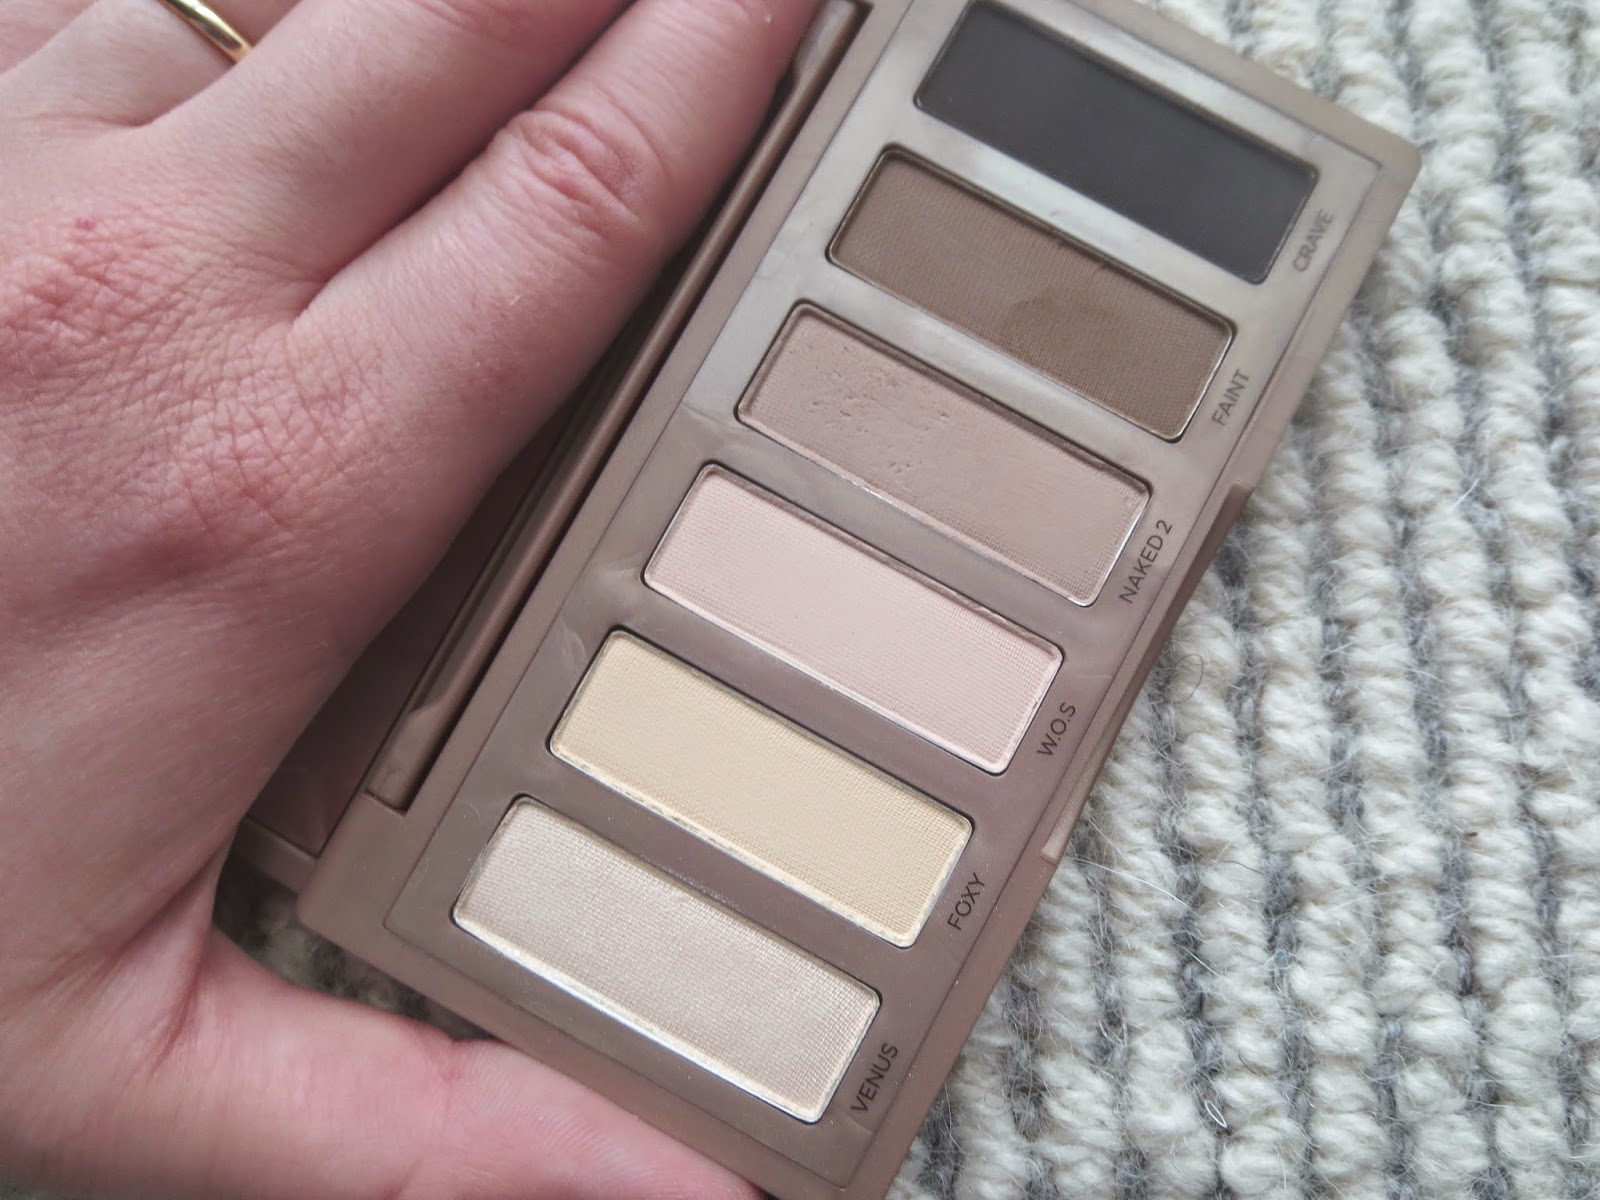 a picture of Urban Decay Naked Basics Palette (original)